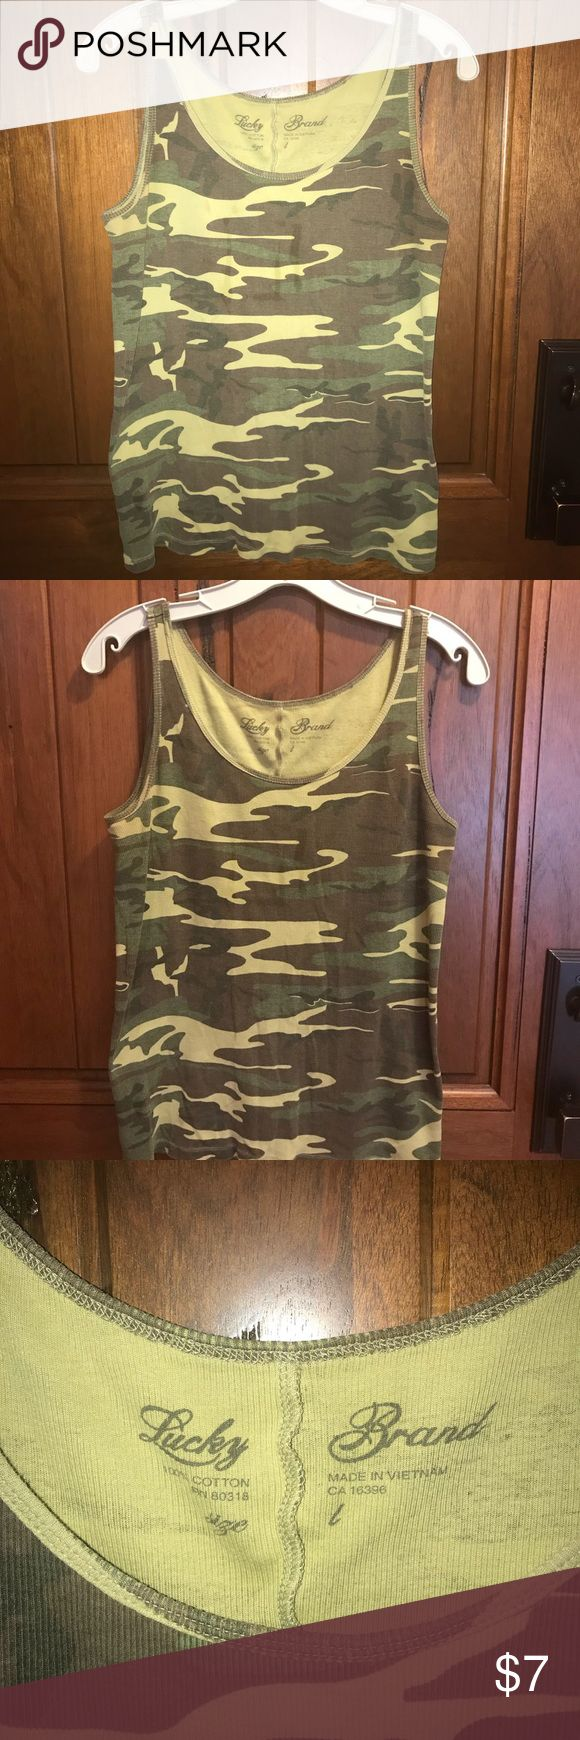 Lucky Brand women's large Ribbed camo tank top Lucky Brand women's large Ribbed camo tank top in good condition Lucky Brand Tops Tank Tops